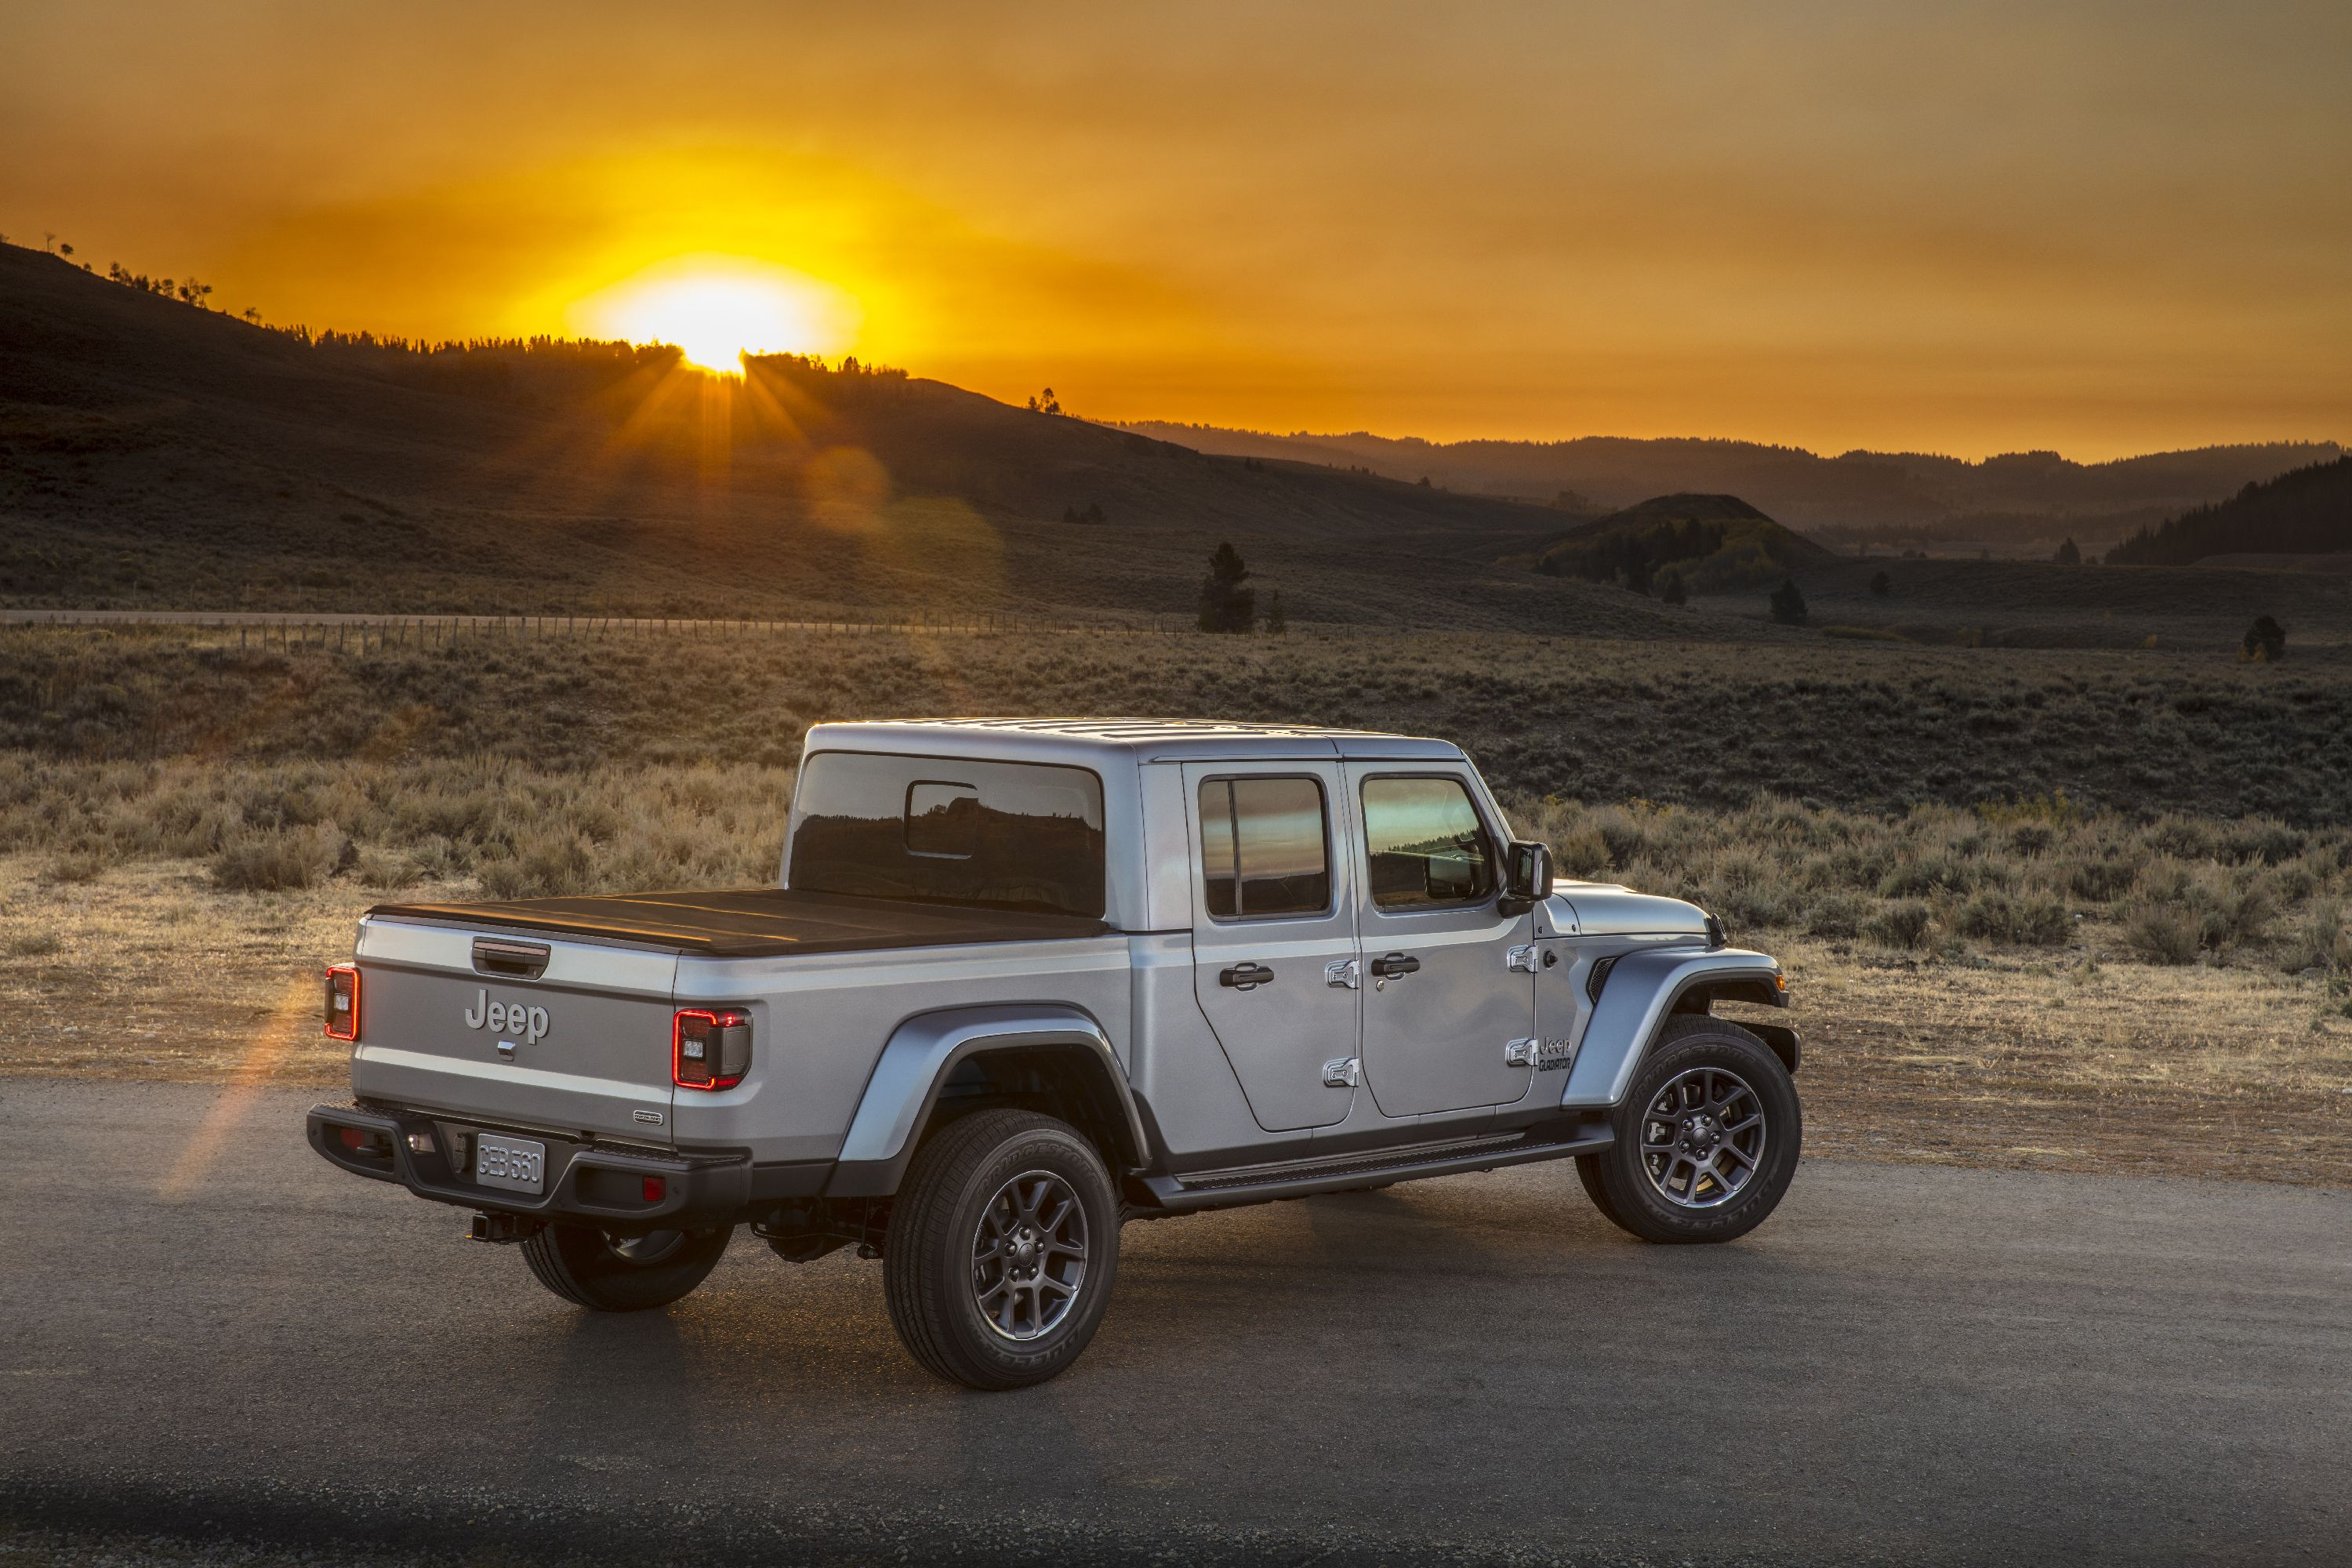 Performance Price Of 2021 Jeep Gladiator